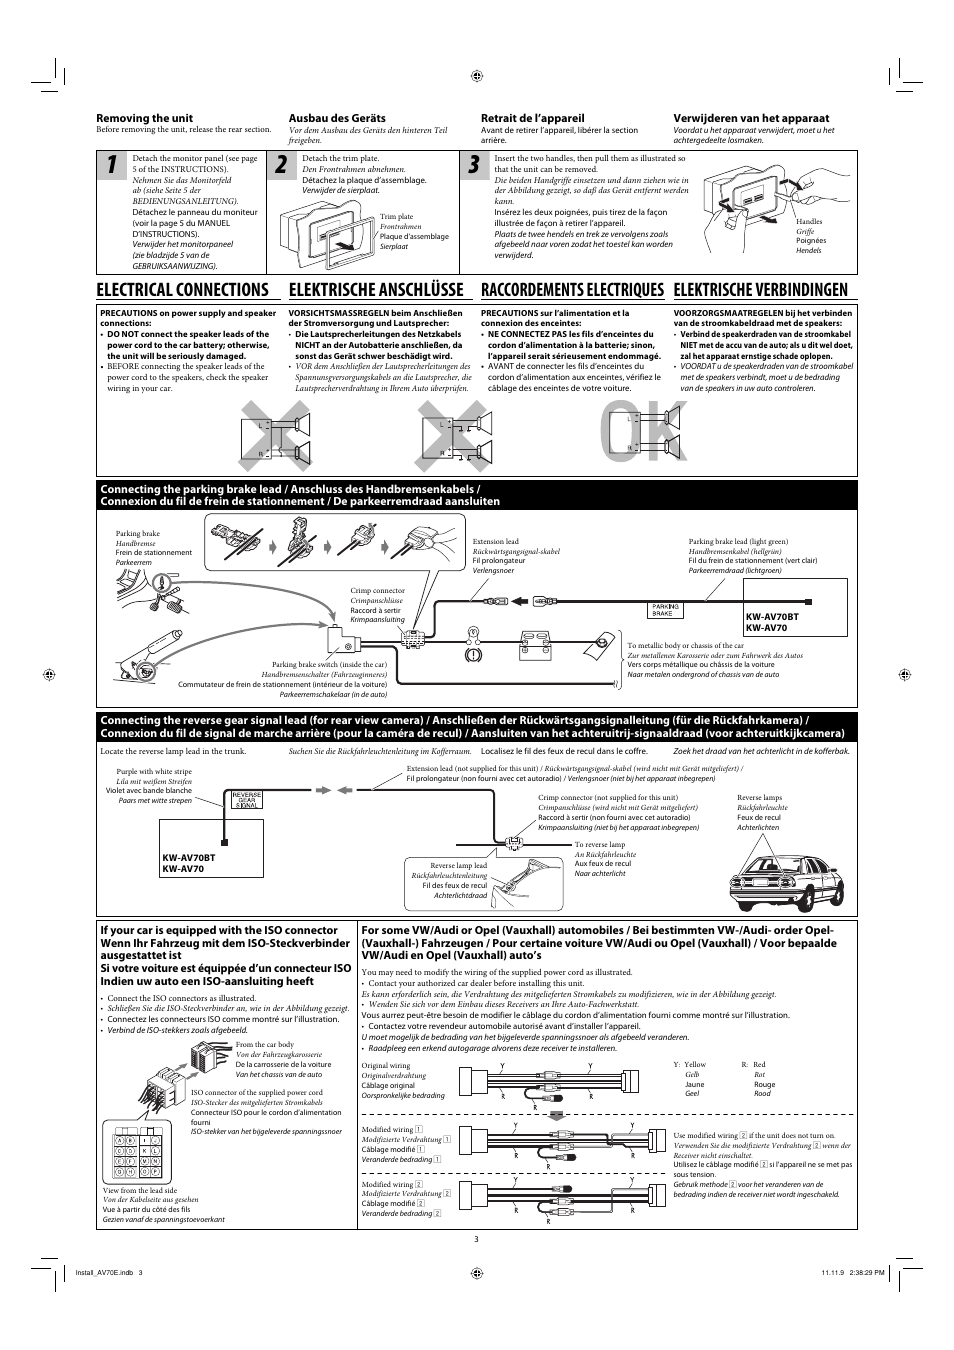 Electrical connections, Raccordements electriques